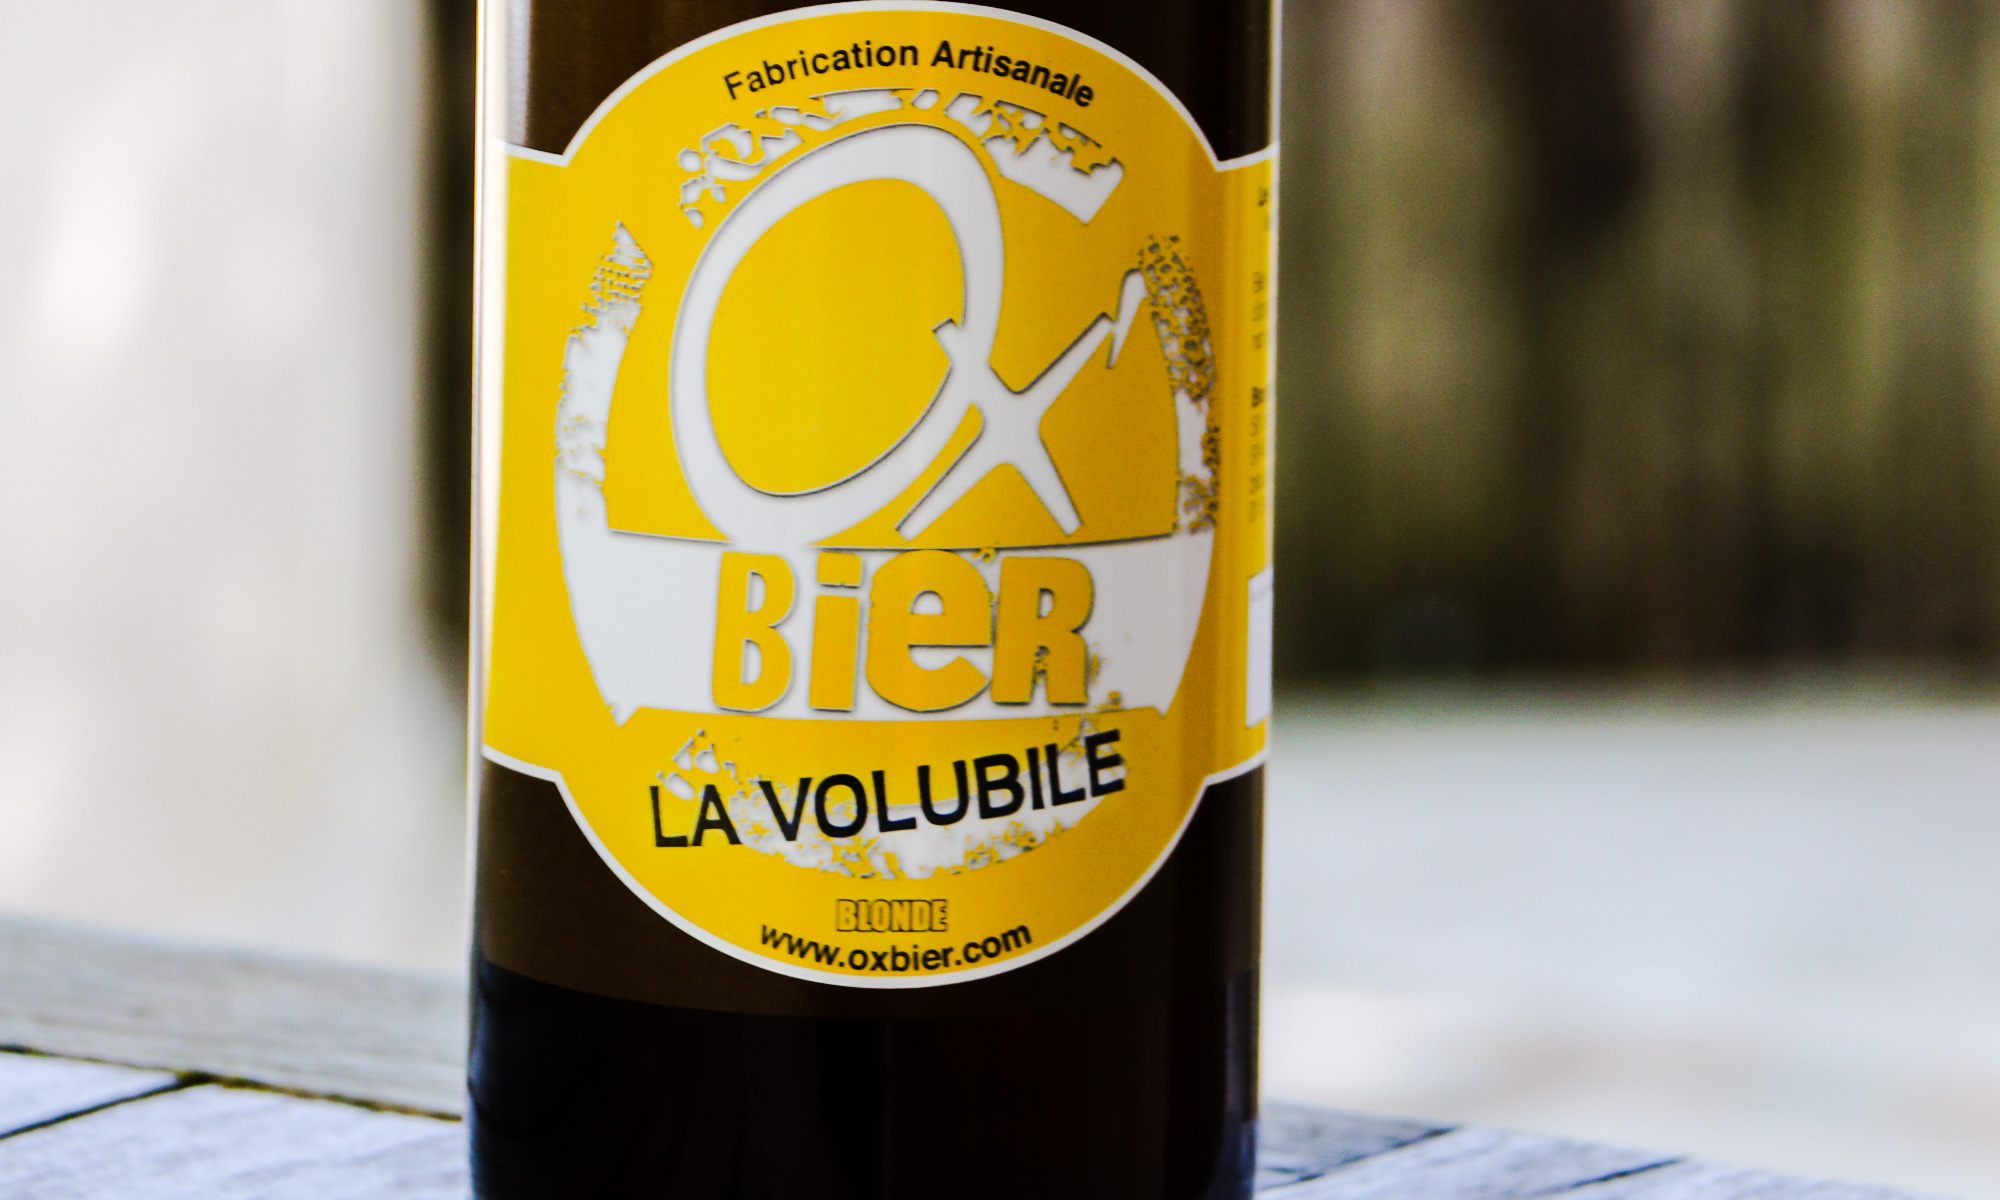 Ox'Bier La Volubile